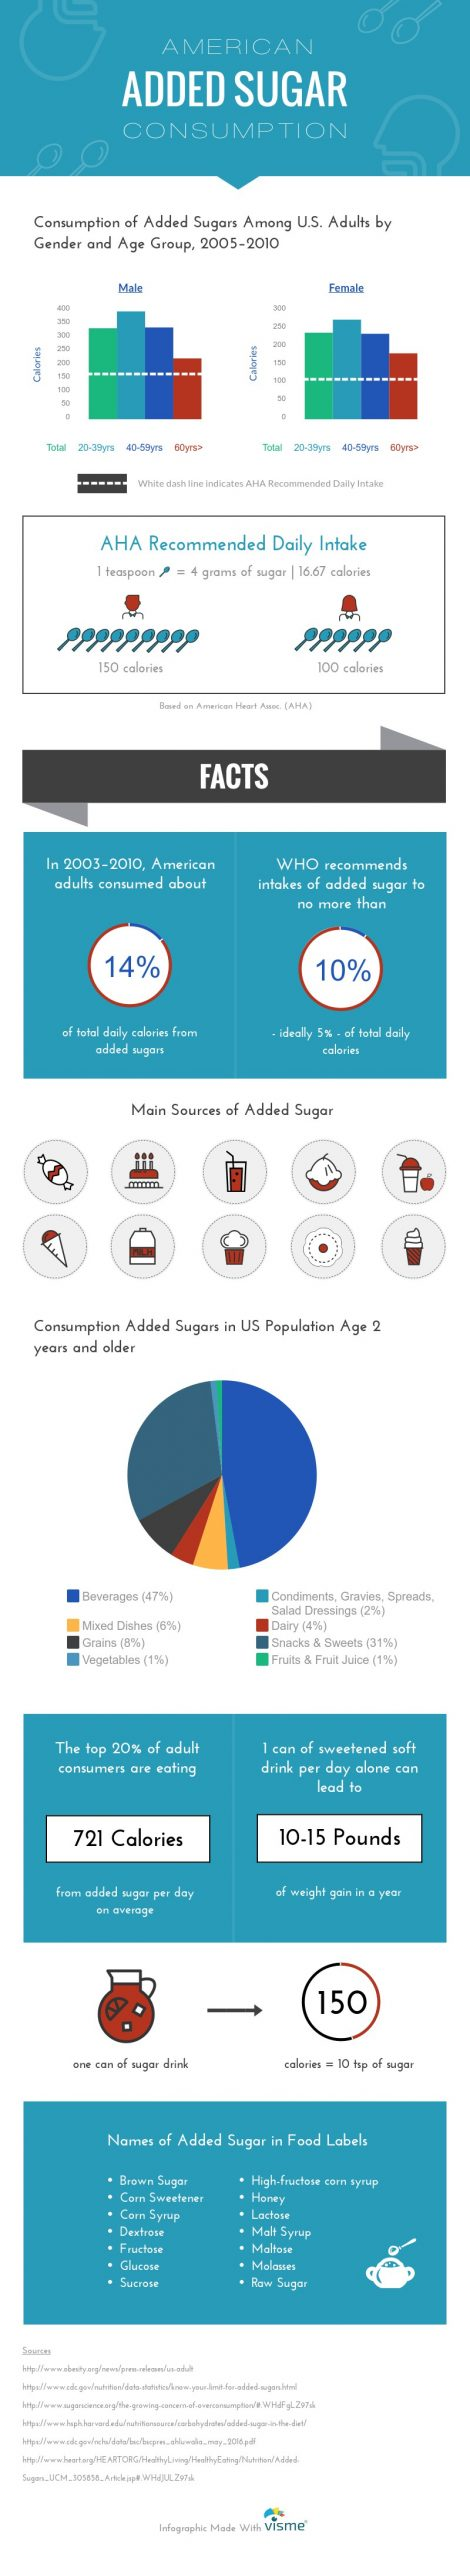 Added Sugar Infographic for Reducing Sugar